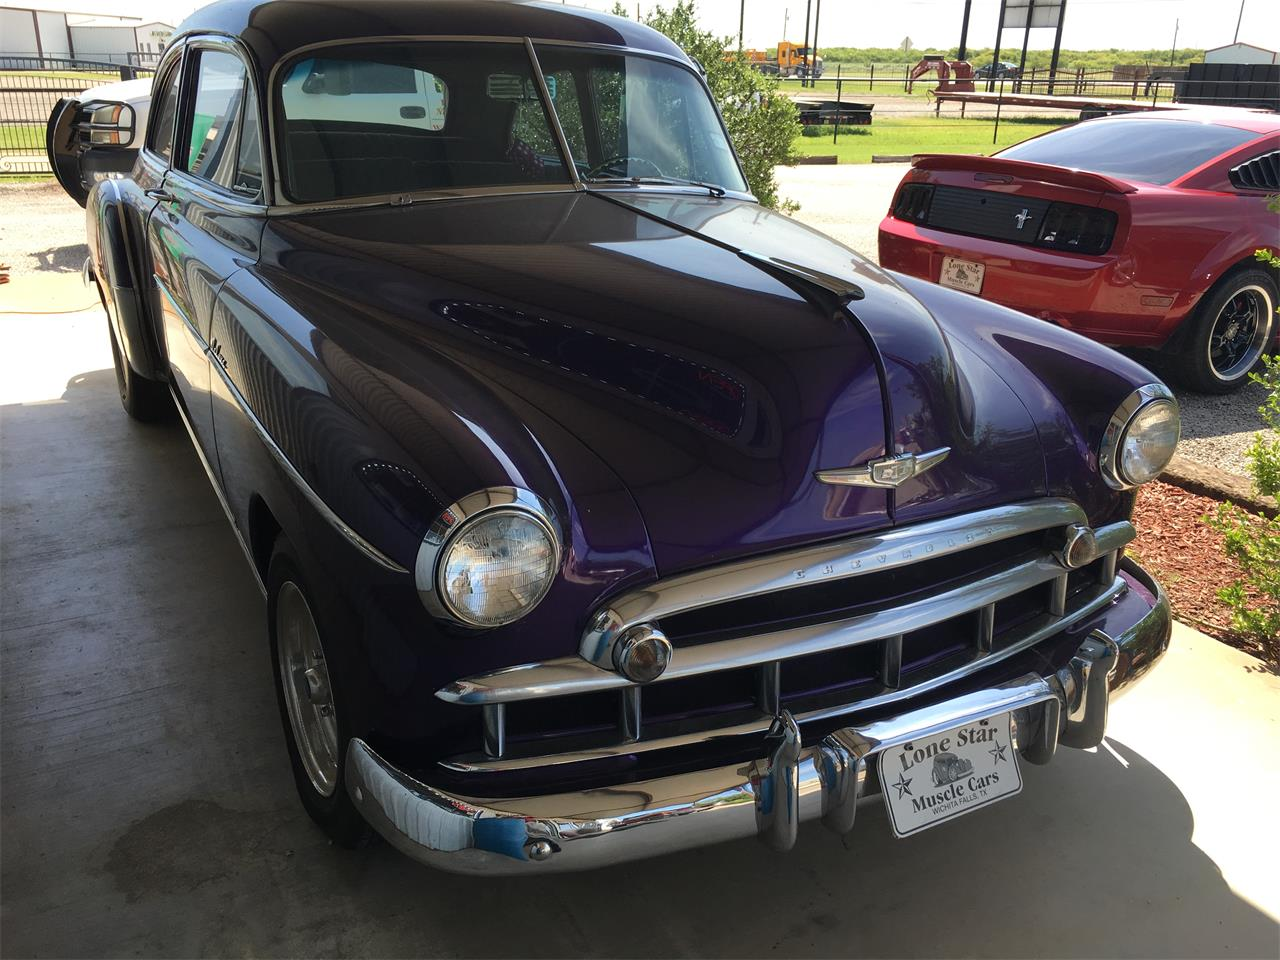 Large Picture of 1949 Chevrolet Deluxe located in Sioux Falls South Dakota - $25,000.00 Offered by a Private Seller - LFXQ